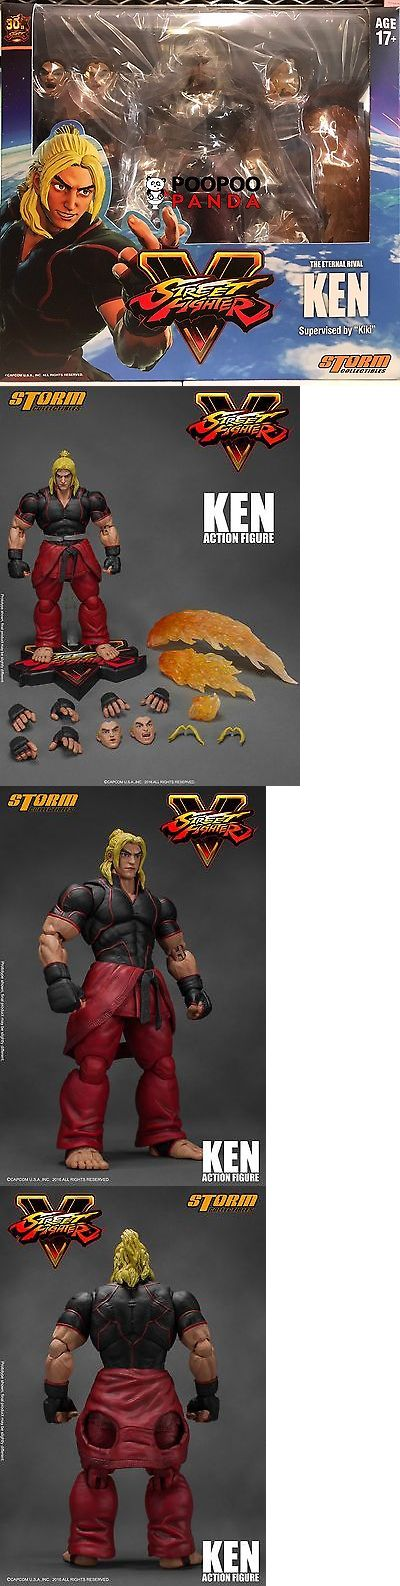 Anime and Manga 158666: Storm Collectibles Ken Street Fighter V 1 12 Action Figure In Stock Usa -> BUY IT NOW ONLY: $69.99 on eBay!